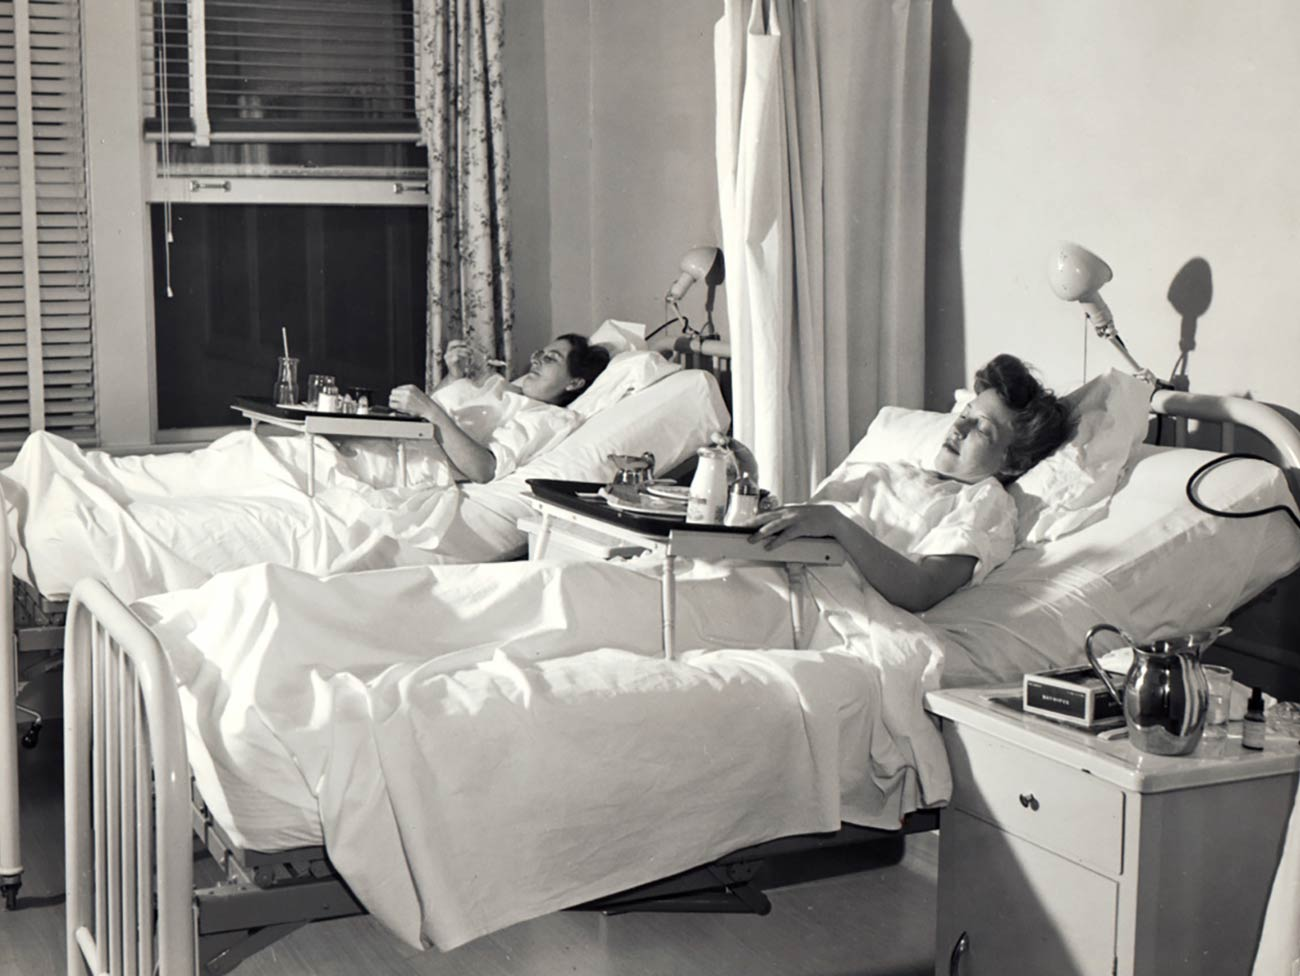 2 women in hospital beds in the same room at a Kaiser Permanente hospital in 1944.